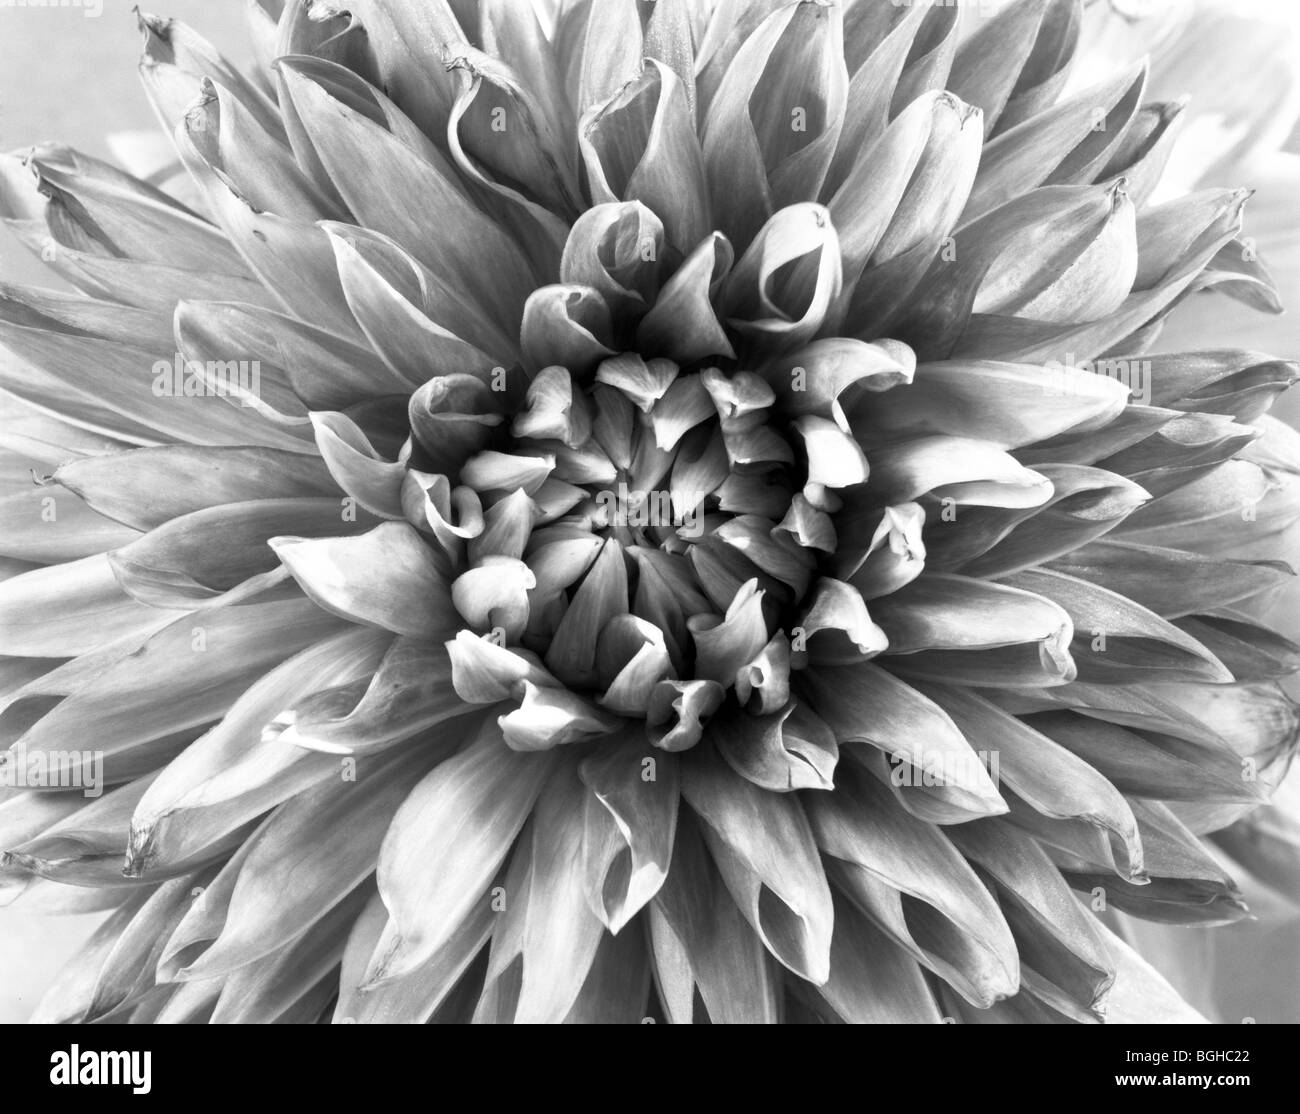 Dahlia flower black and white stock photos images alamy washington dahlia flower in full bloom stock image izmirmasajfo Gallery